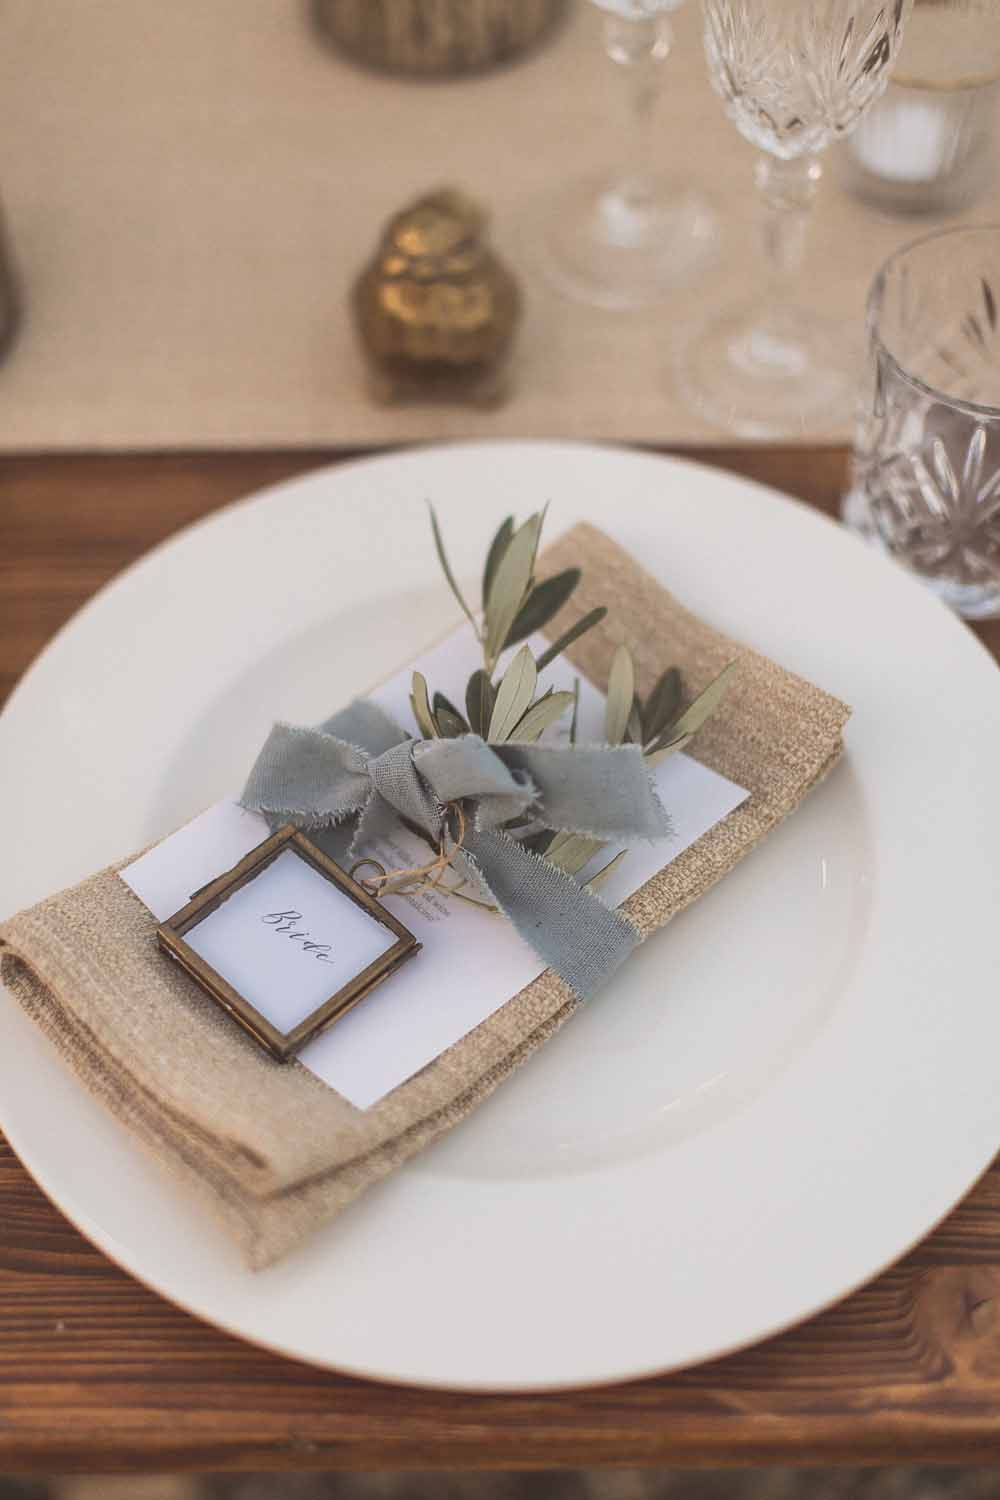 Italian style olive wedding place setting - brass place card holder by The Wedding of my Dreams (shop)